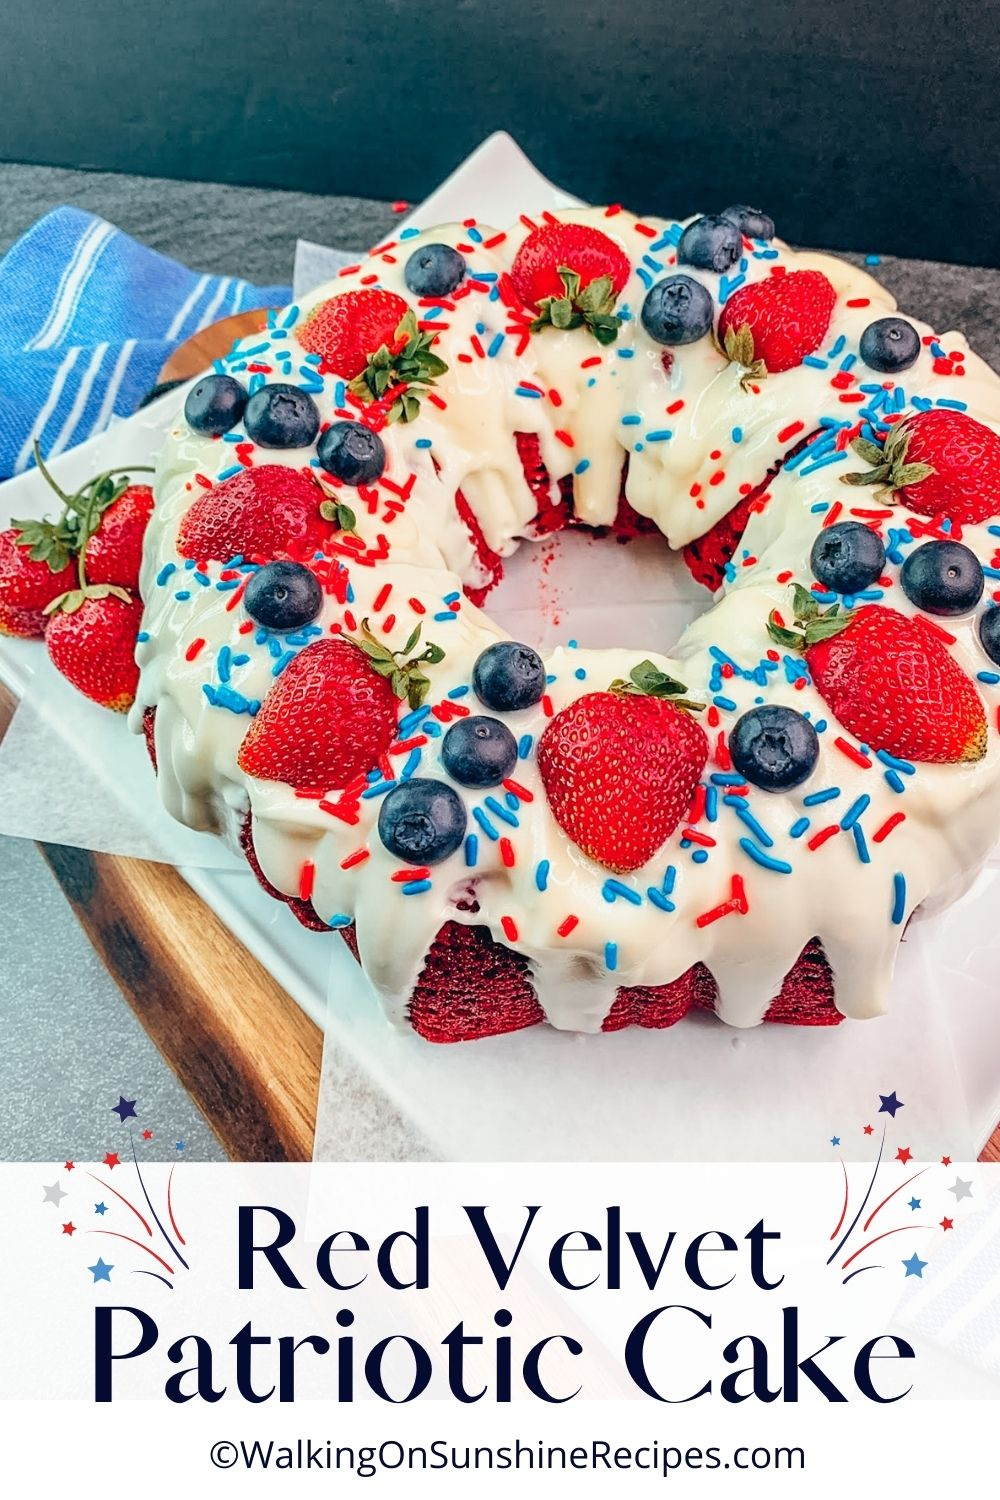 red velvet bundt cake decorated with strawberries, blueberries and sprinkles.